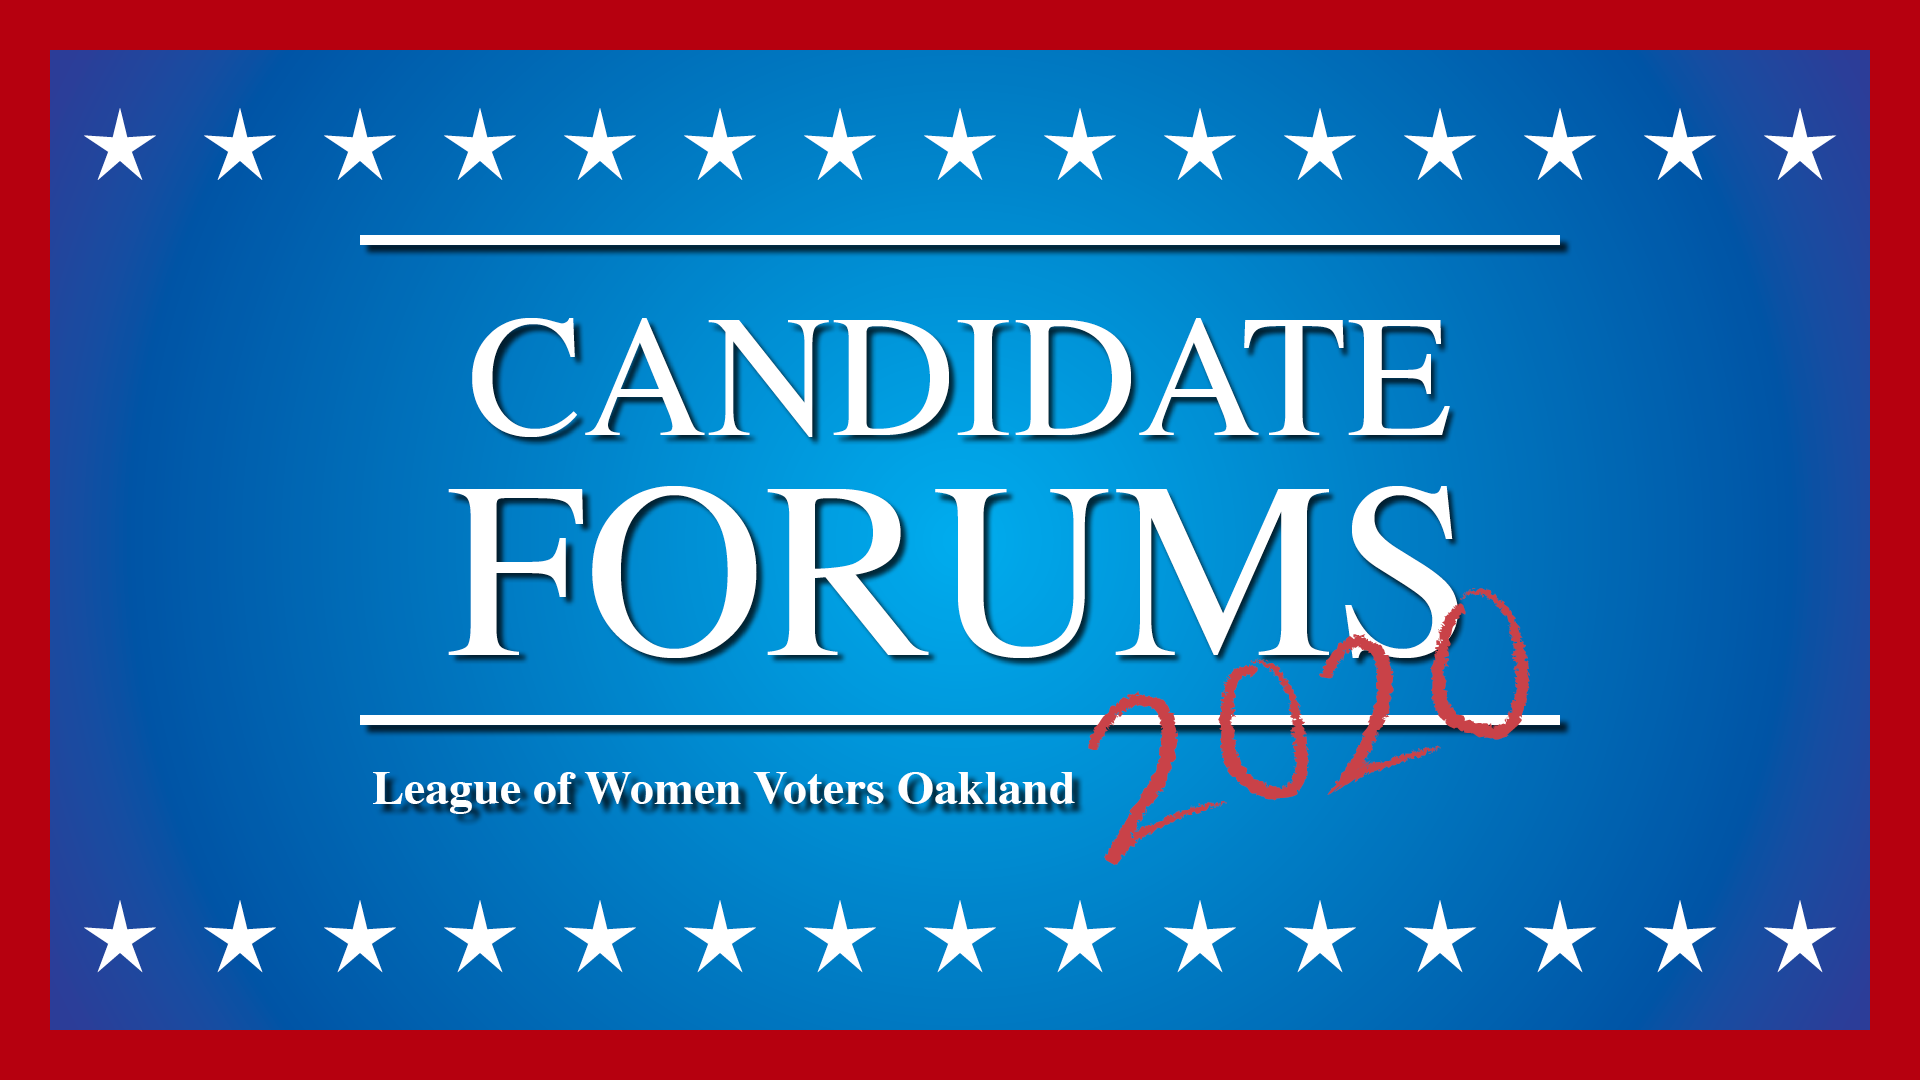 """image that displays the text, """"Candidate Forums, League of Women Voters Oakland, 2020"""""""